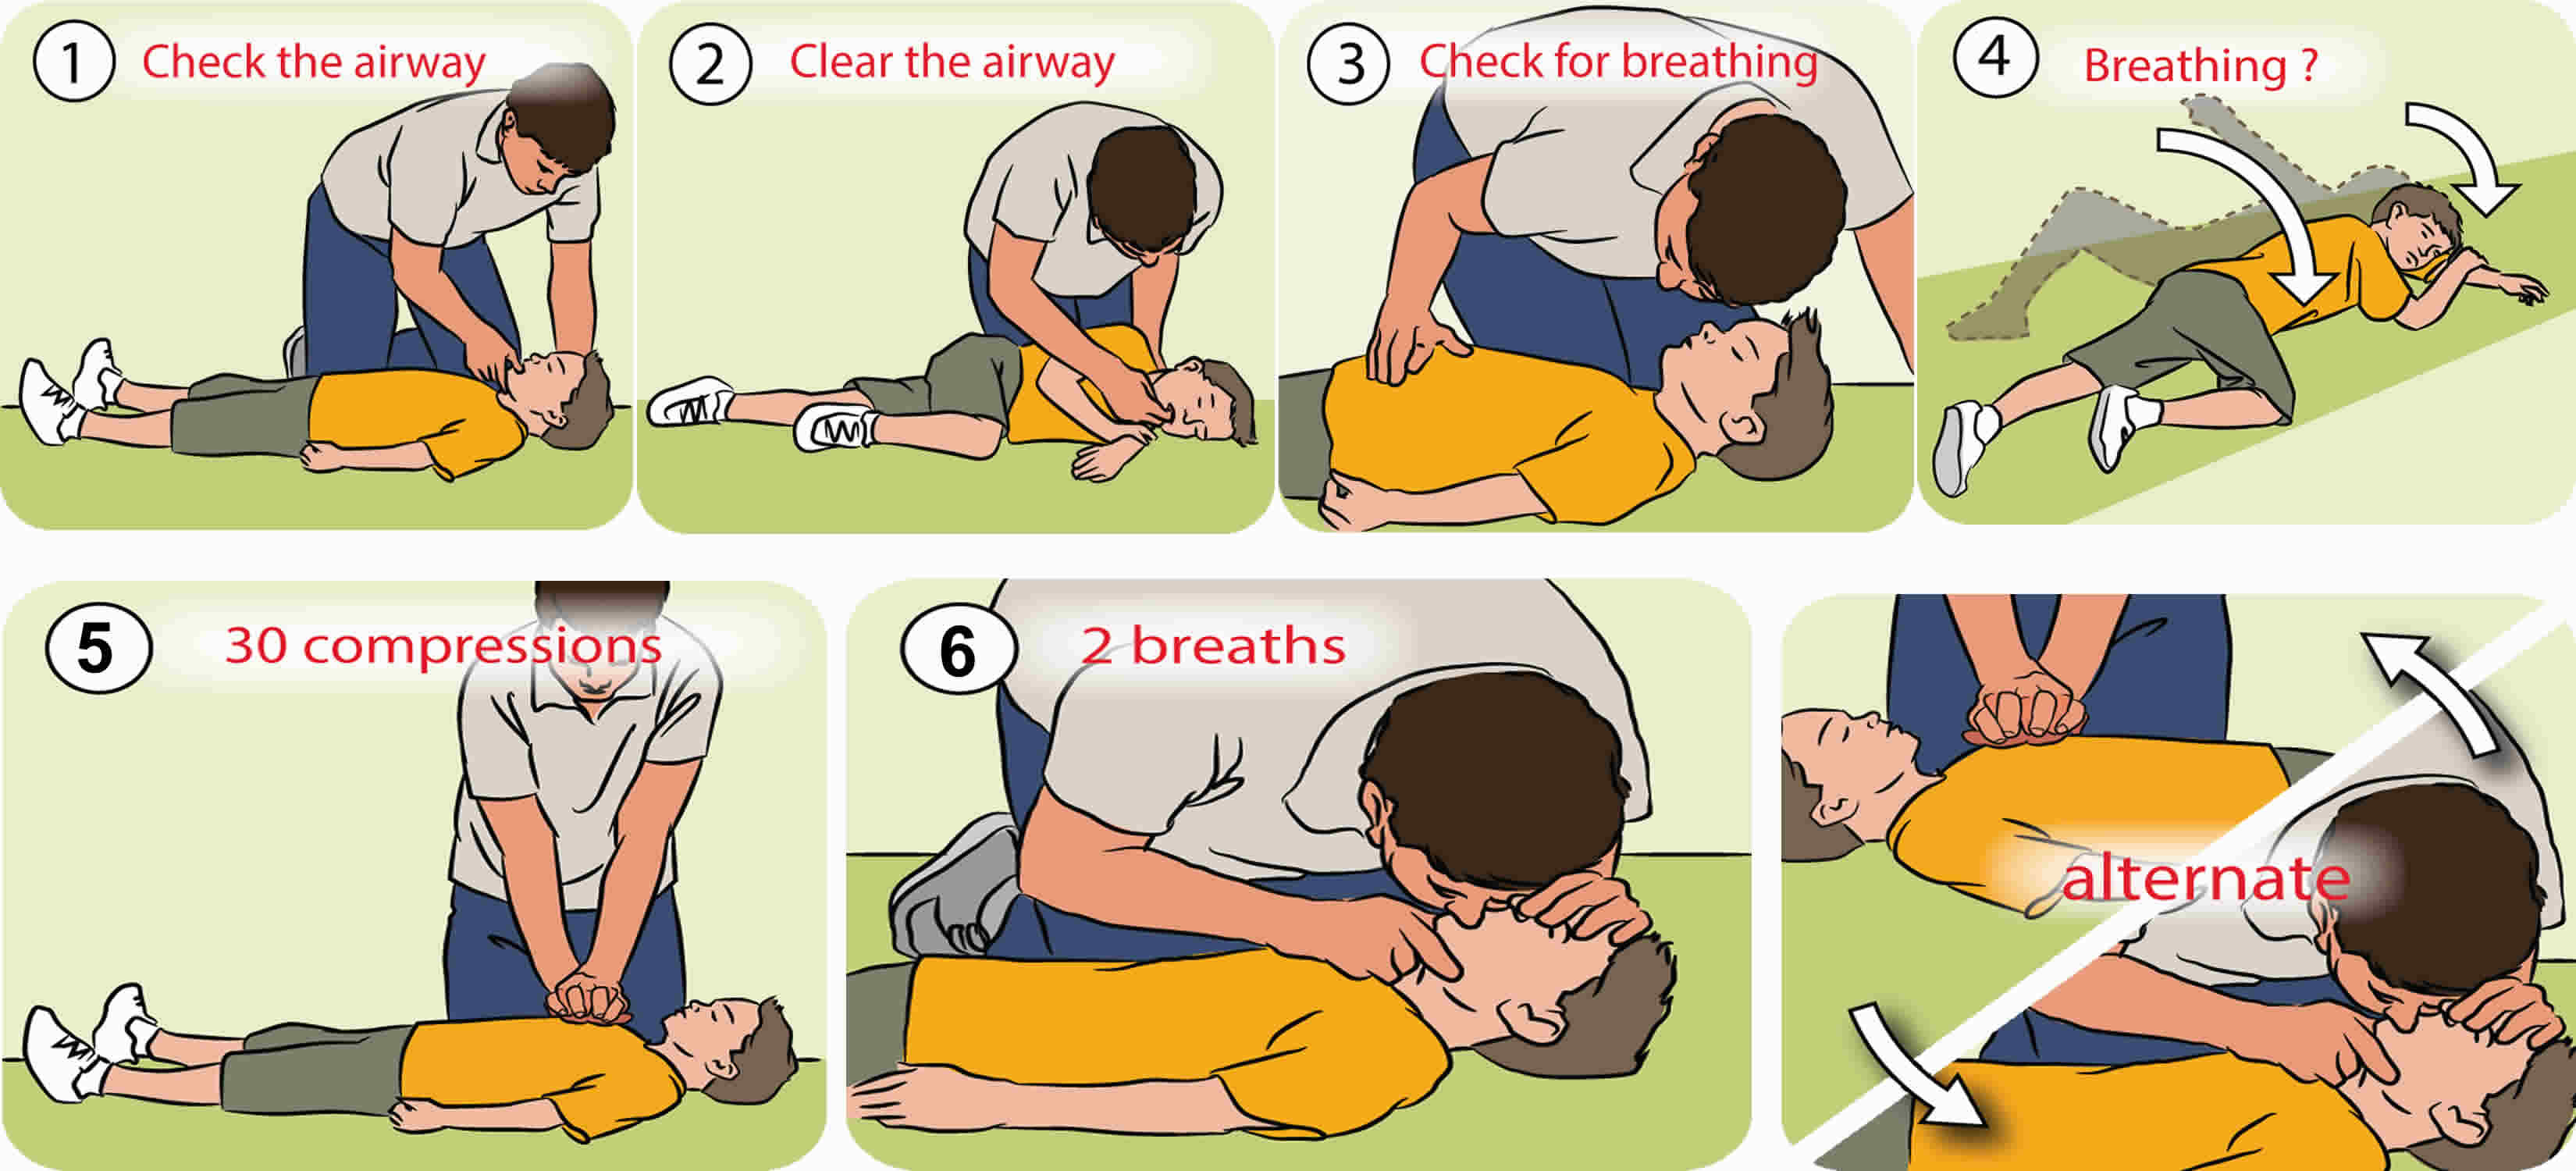 CPR for for children over 1 year